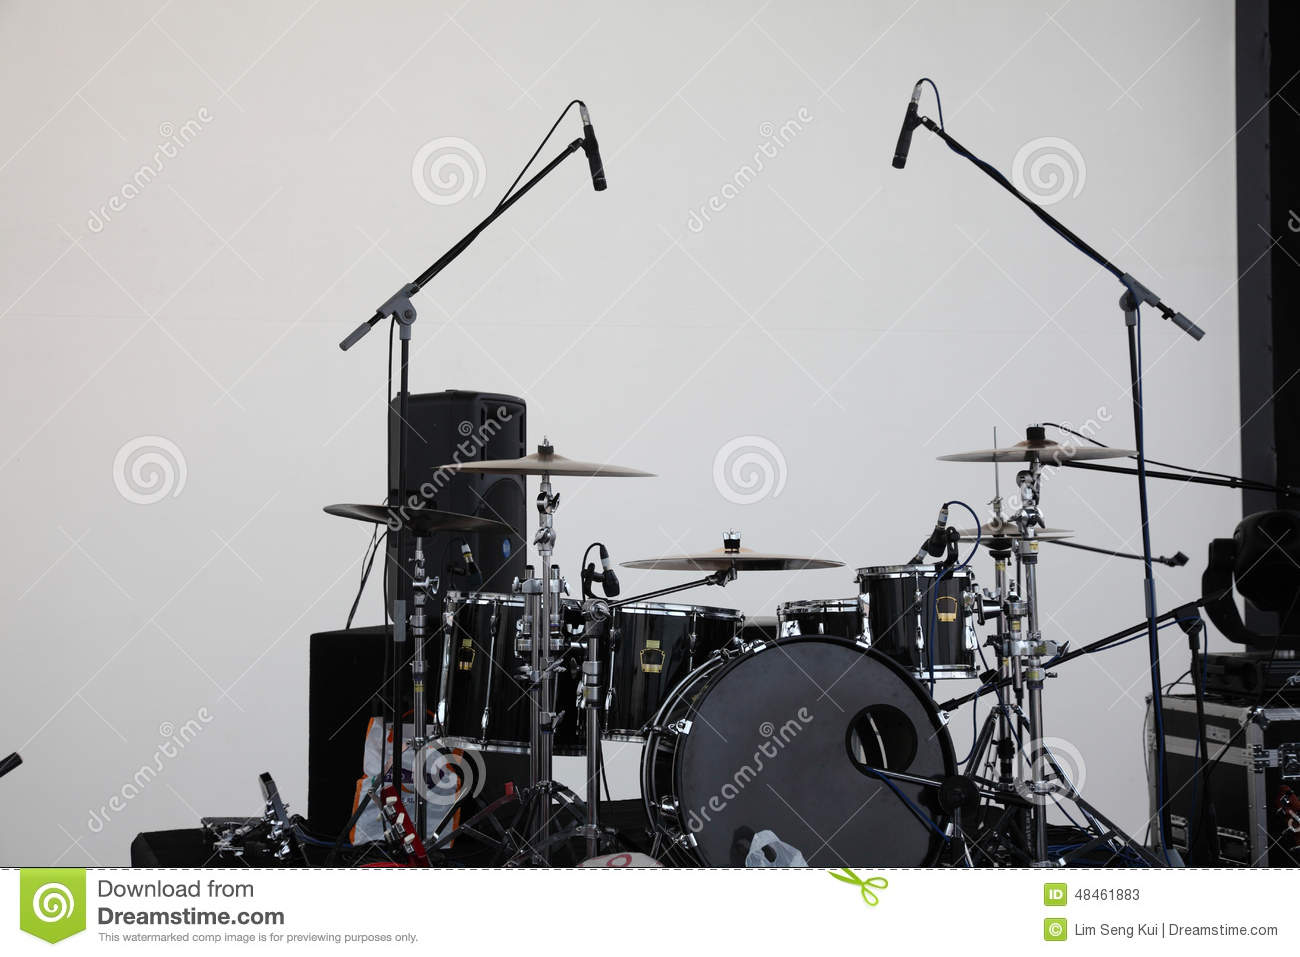 Drum Set With Microphone Stock Photo - Image: 48461883